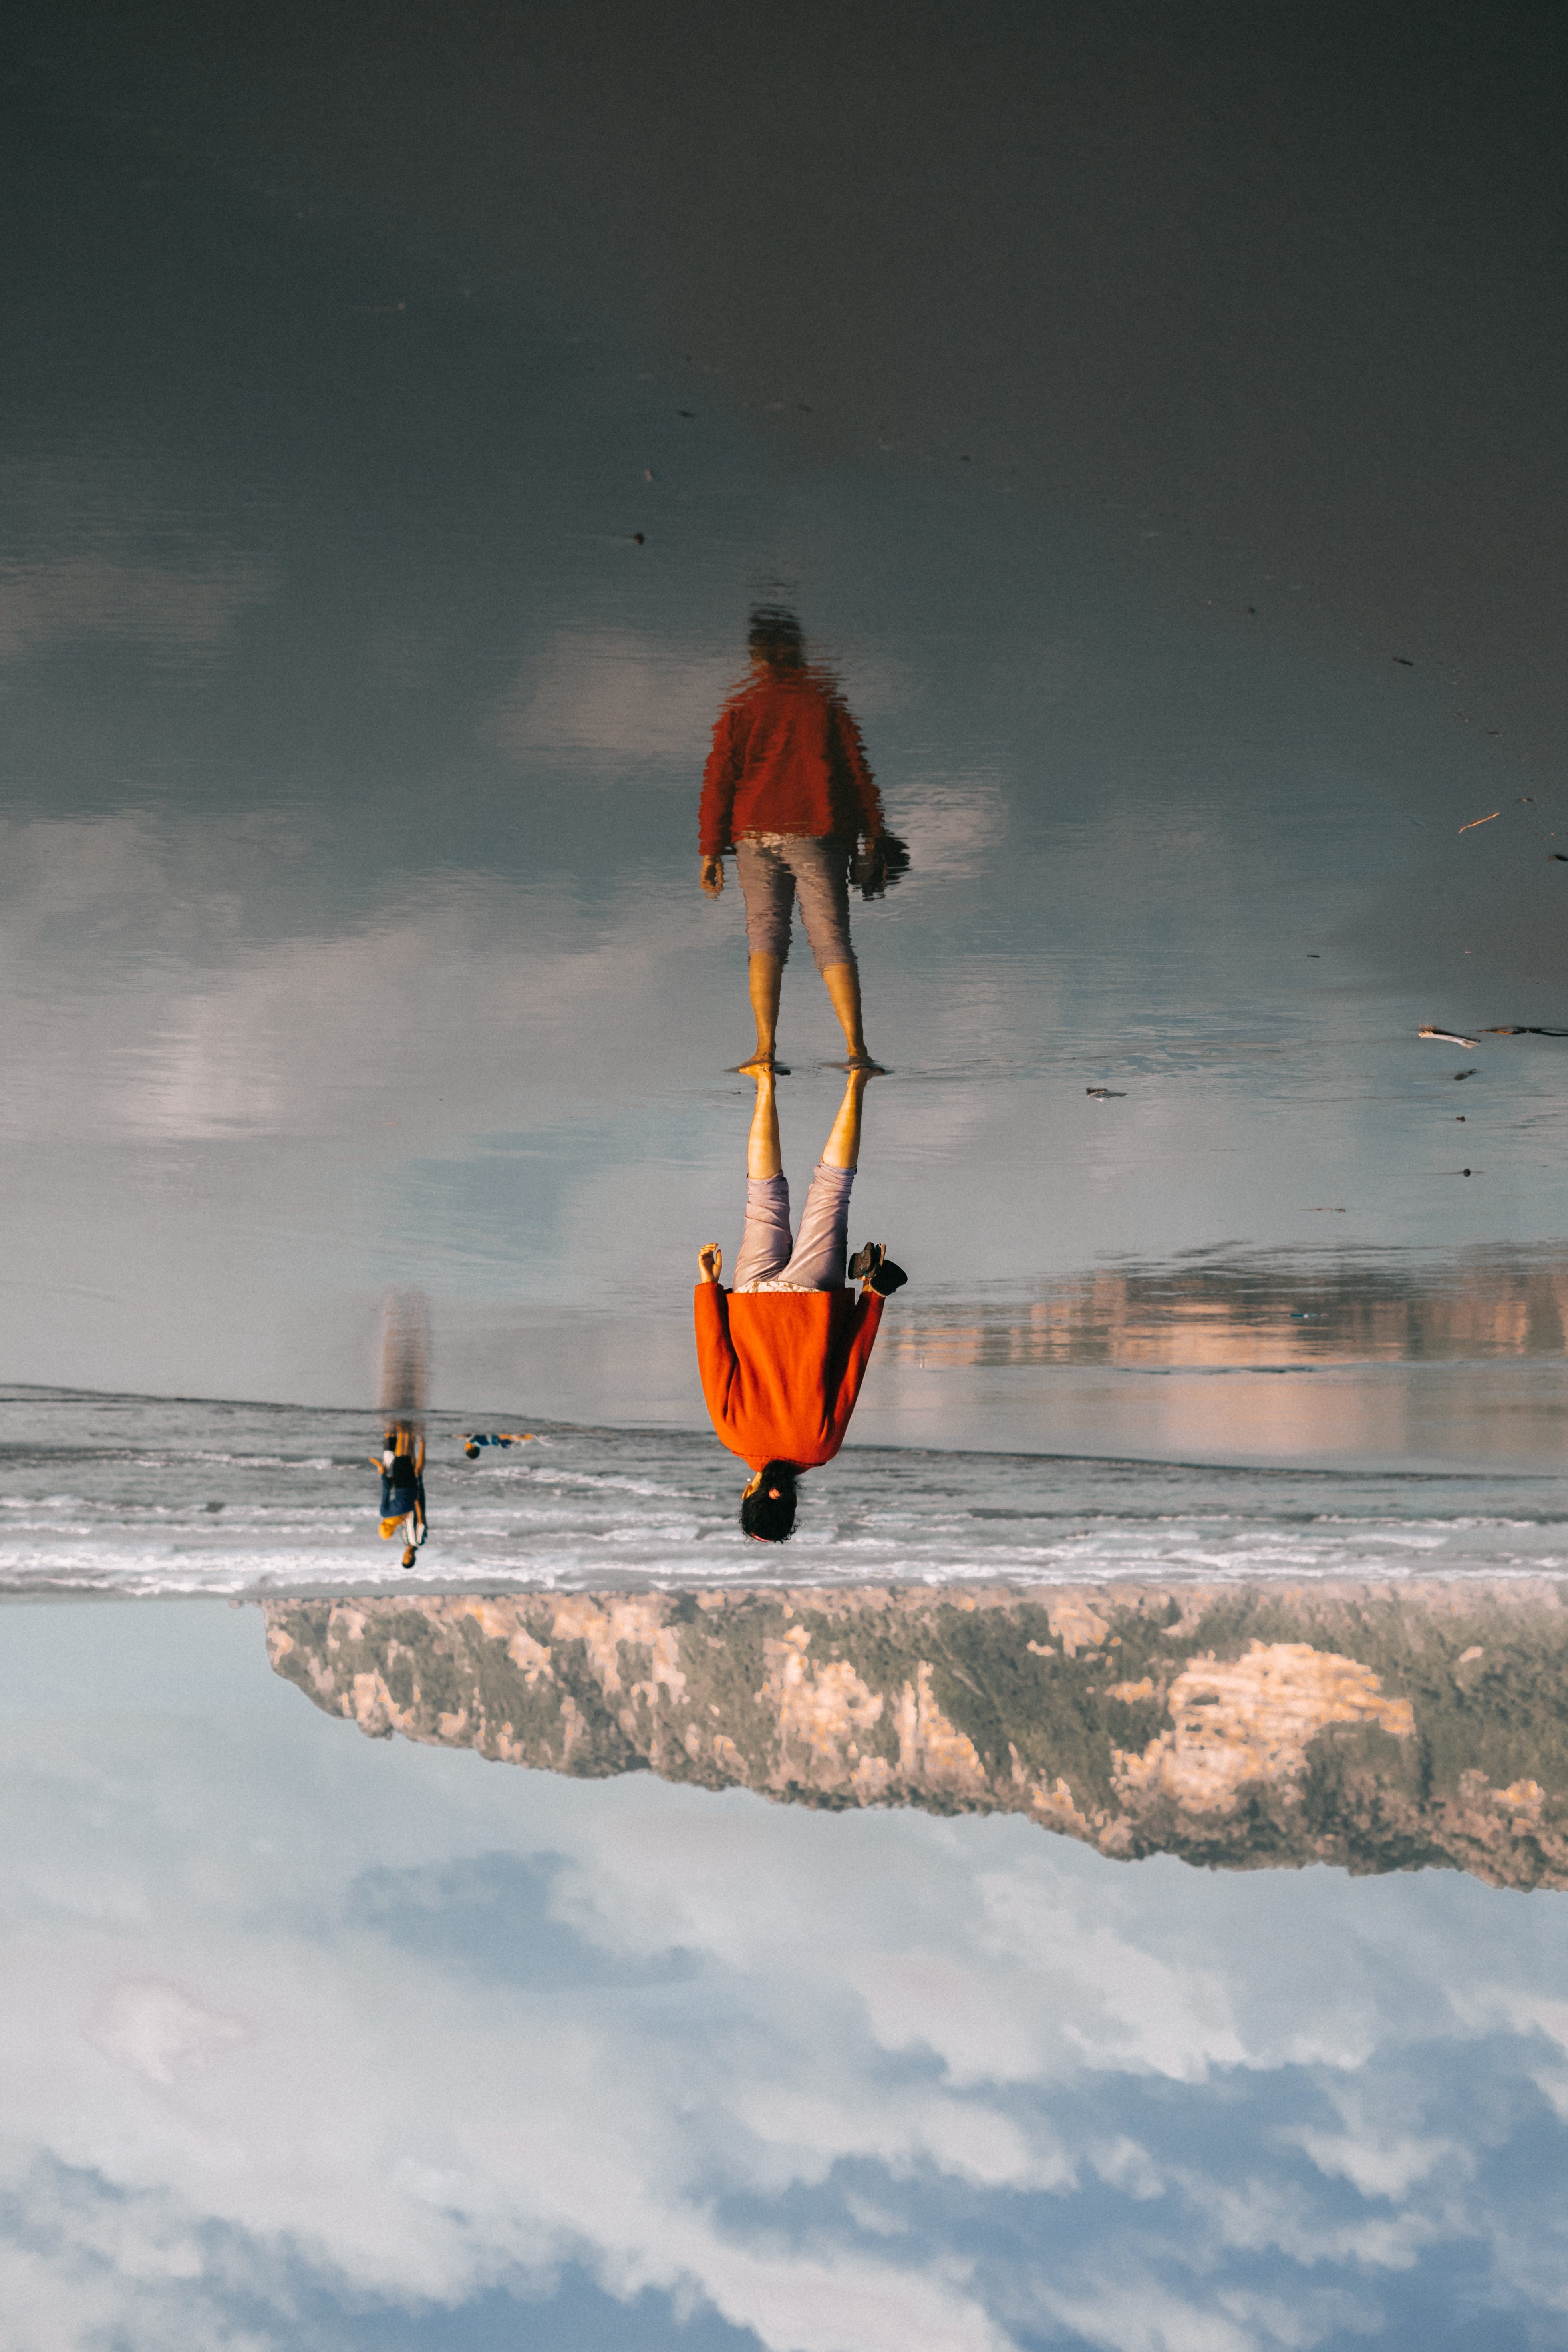 Person Standing on Body of Water Image during Day